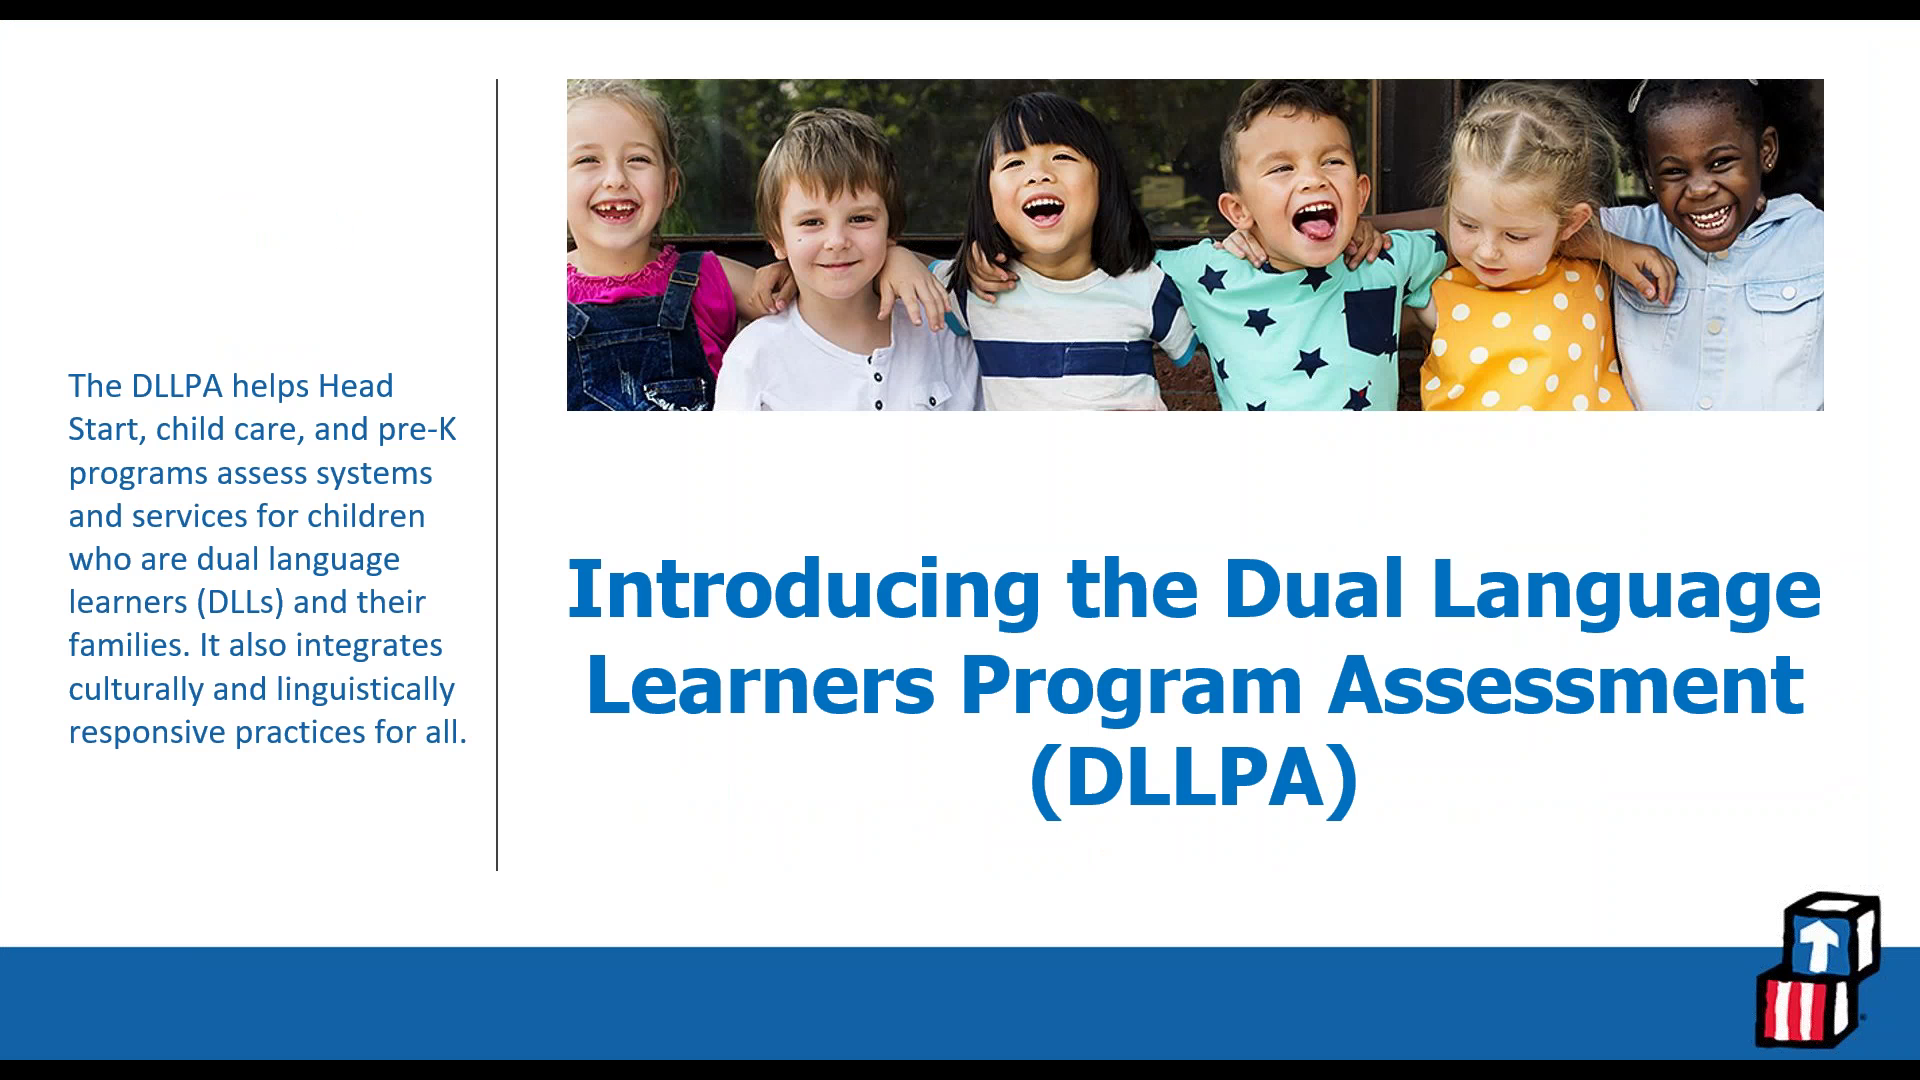 Introducing the Dual Language Learners Program Assessment (DLLPA)